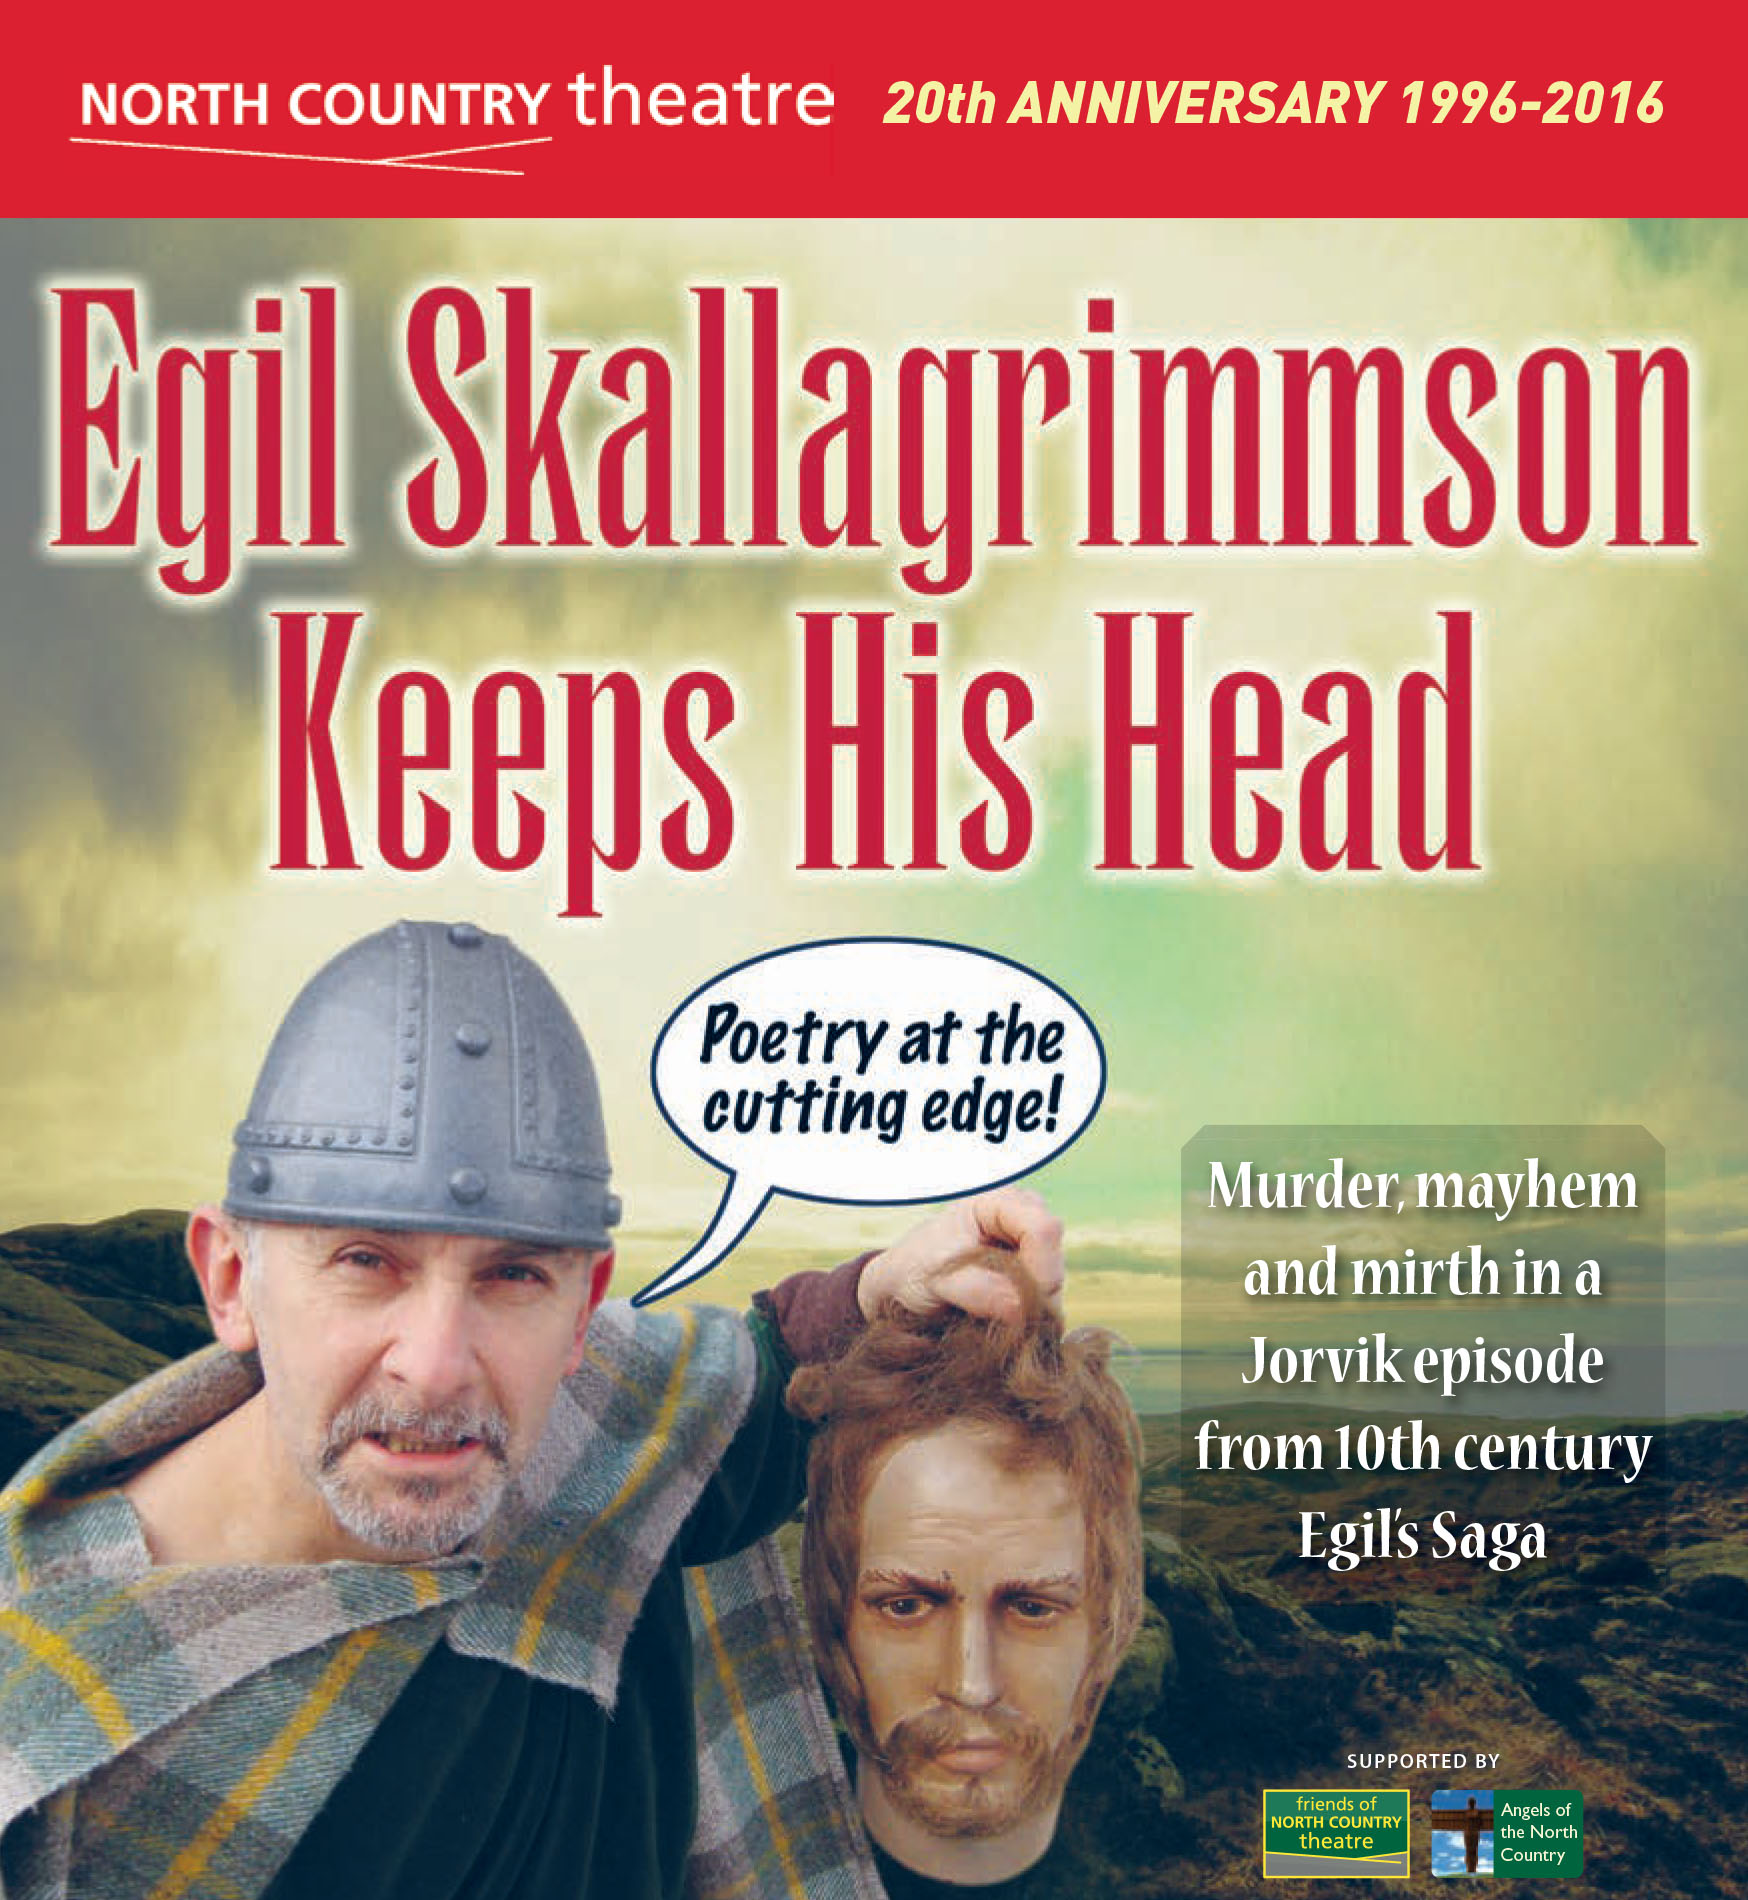 Egil Skallagrimmson Keeps His Head (2016)